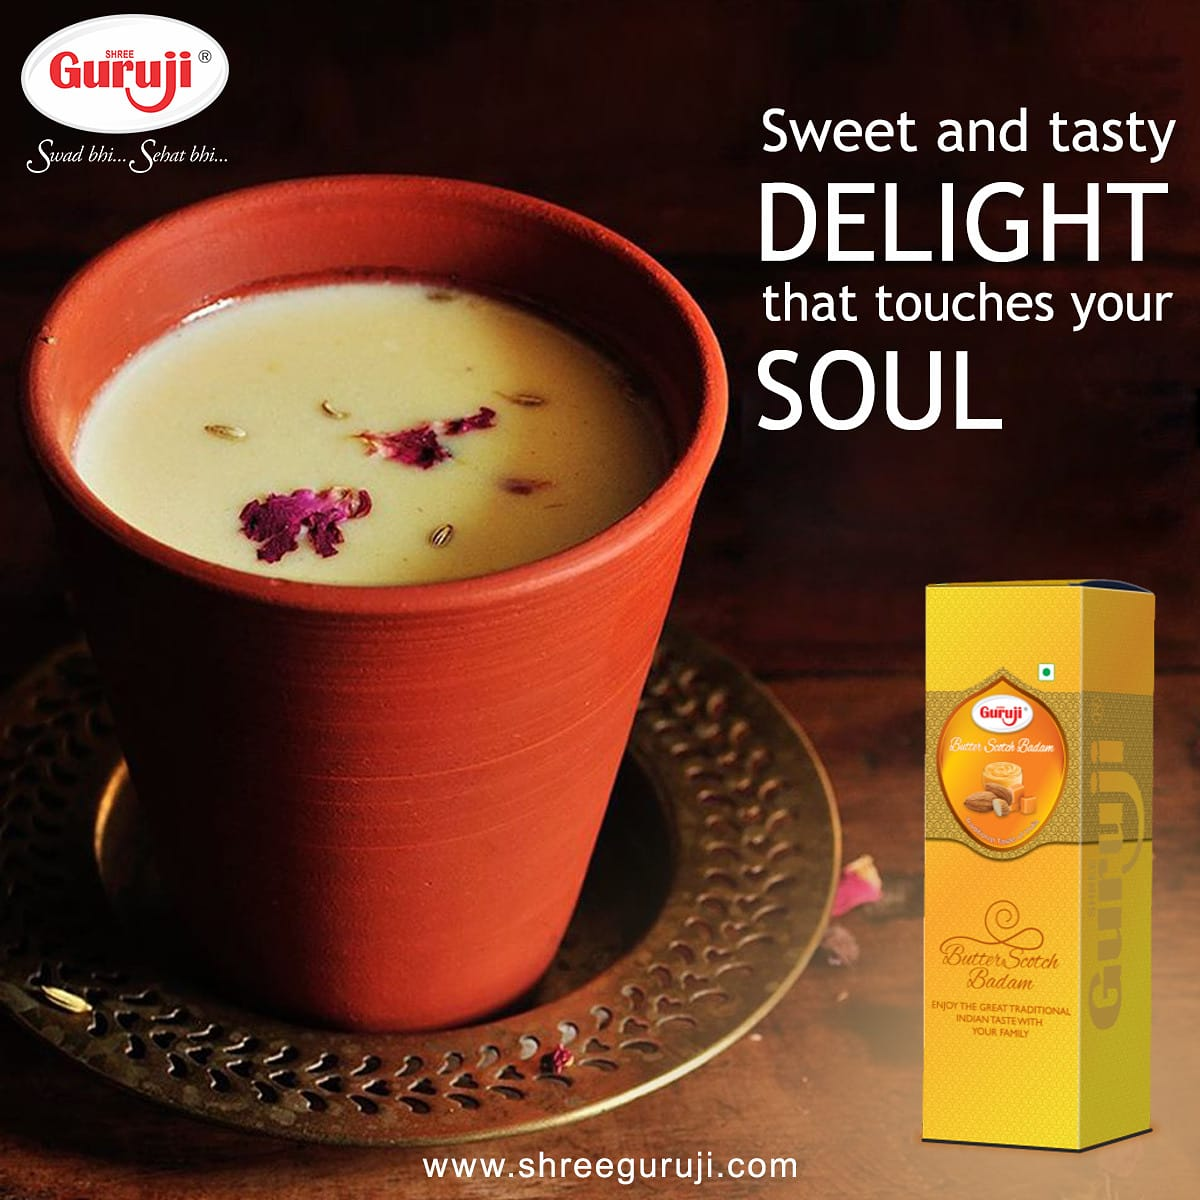 Sweet and tasty delight that touches your soul. : : : : : #butterscotch #butbuterscotchbadam #butter #beverages #indianbeverages #flavouredmilk #ImmunitySupport #immunitybooster #gurujiproductpic.twitter.com/guqNJv3GNS